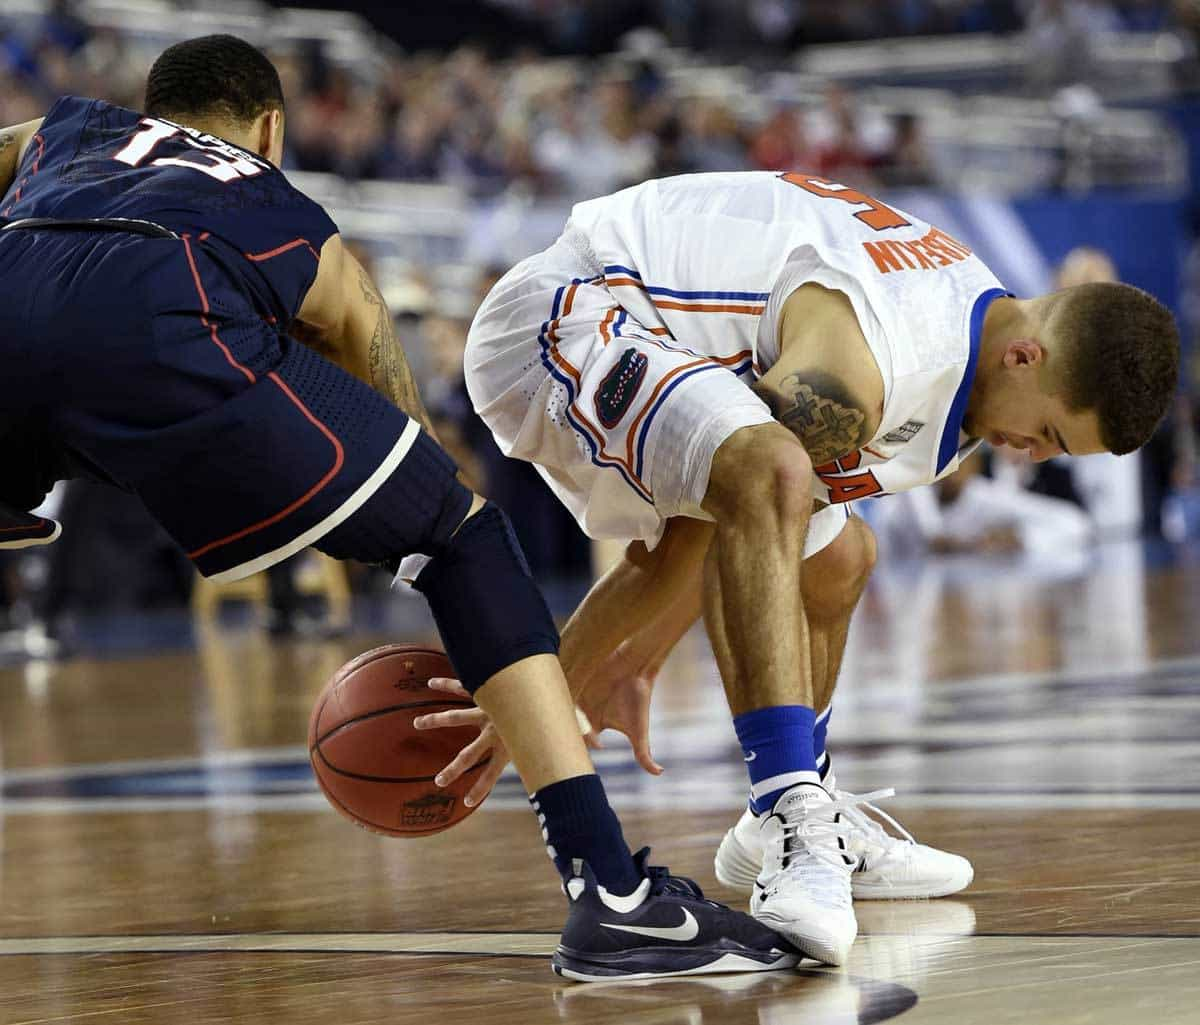 Apr 5, 2014; Arlington, TX, USA; Florida Gators guard Scottie Wilbekin (5) reaches for the ball between his legs against Connecticut Huskies guard Shabazz Napier (13) in the second half during the semifinals of the Final Four in the 2014 NCAA Mens Division I Championship tournament at AT&T Stadium. Photo: Robert Deutsch-USA TODAY Sports